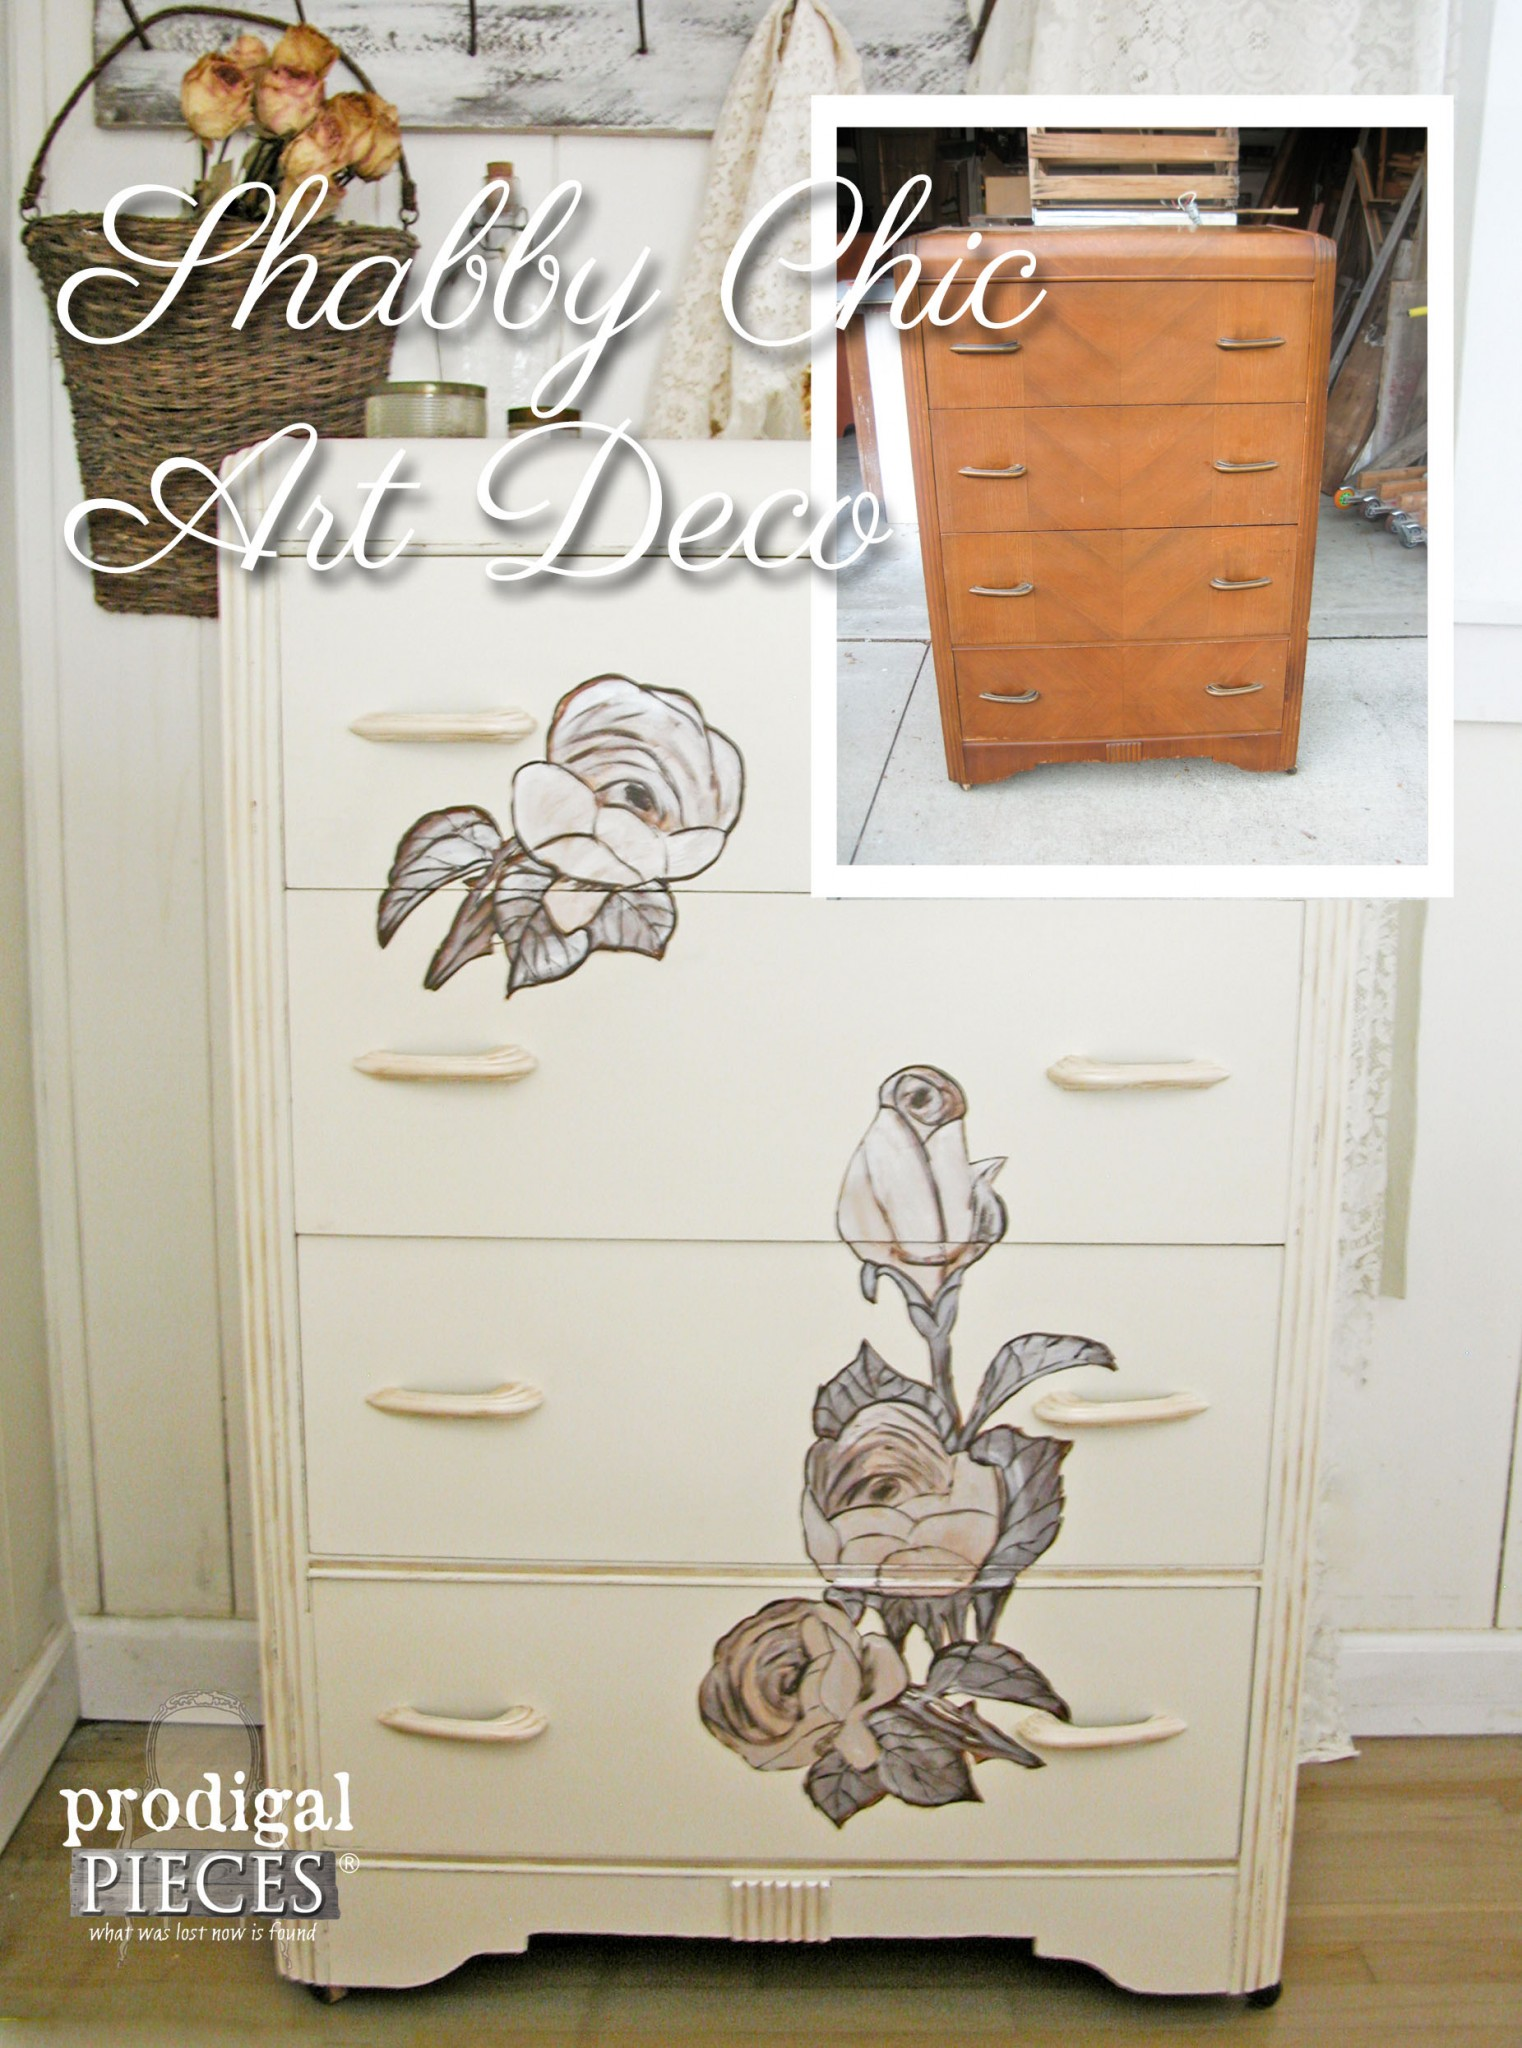 Adding Shabby Chic Details to Art Deco Chest of Drawers | Prodigal Pieces | www.prodigalpieces.com